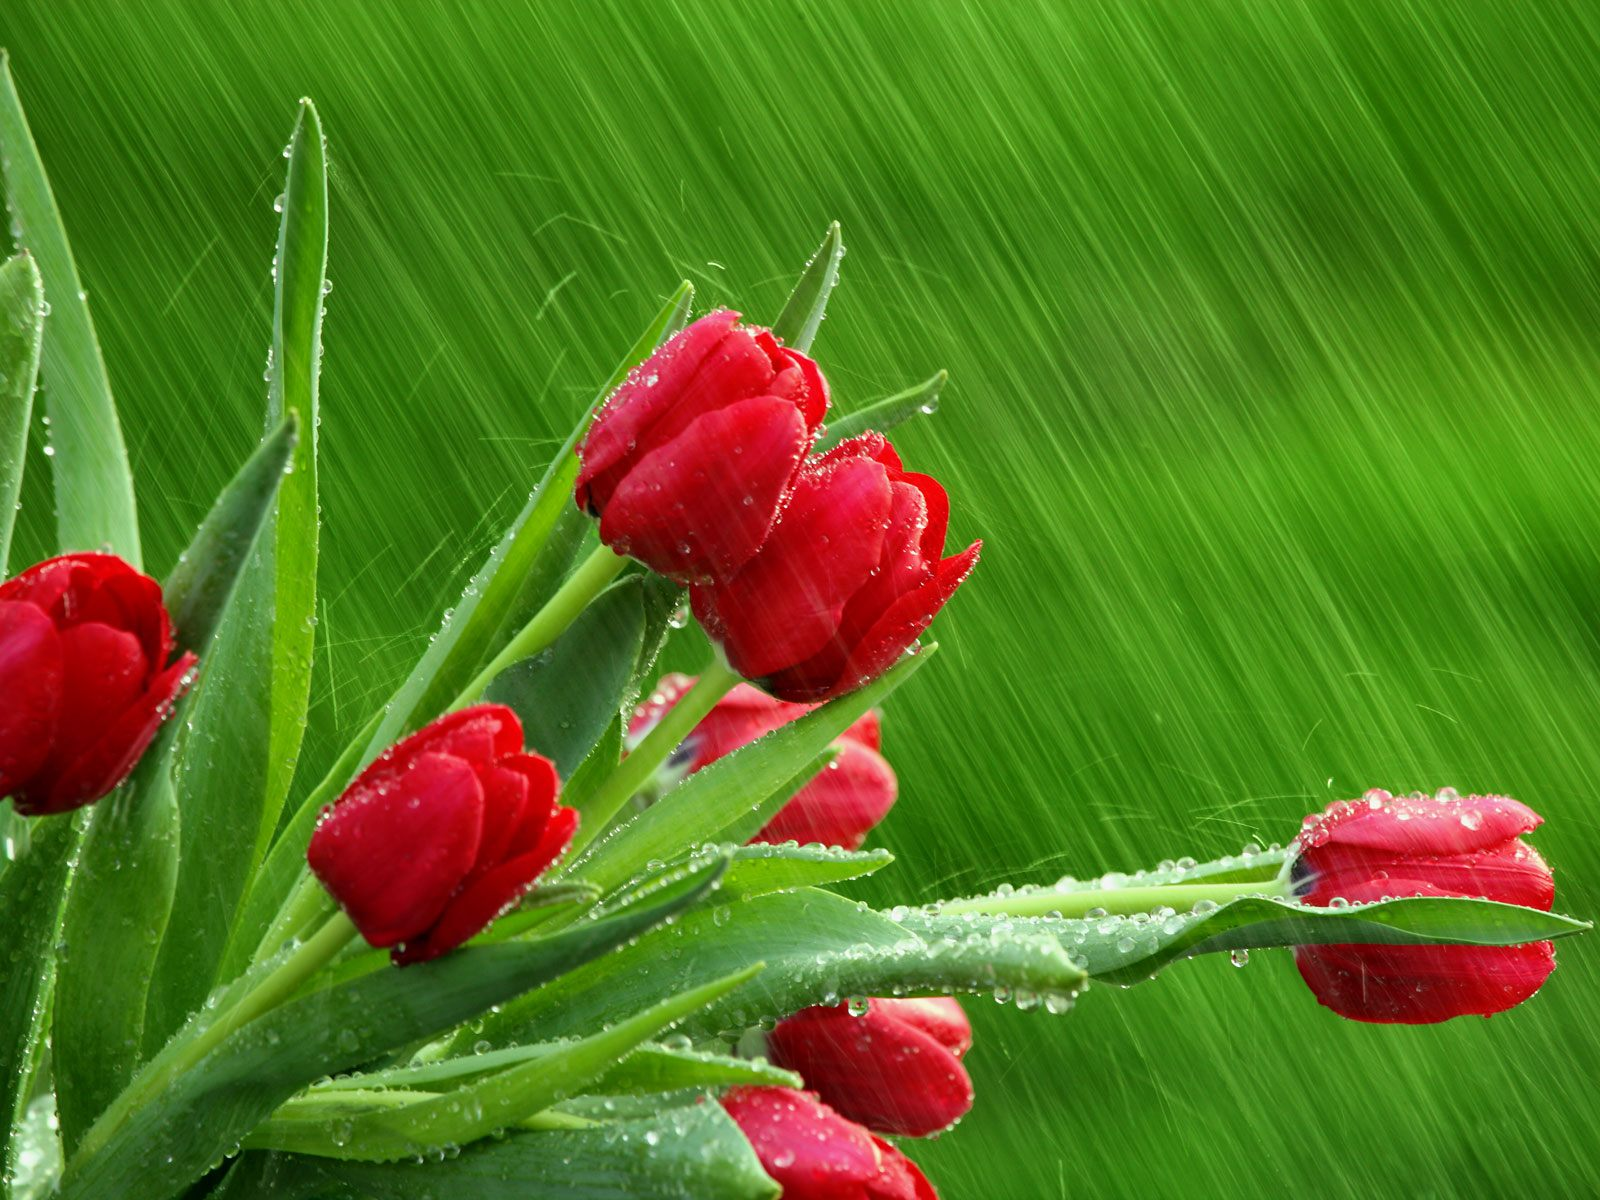 Rain on Flowers Wallpapers HD Wallpapers Pictures Images 1600x1200